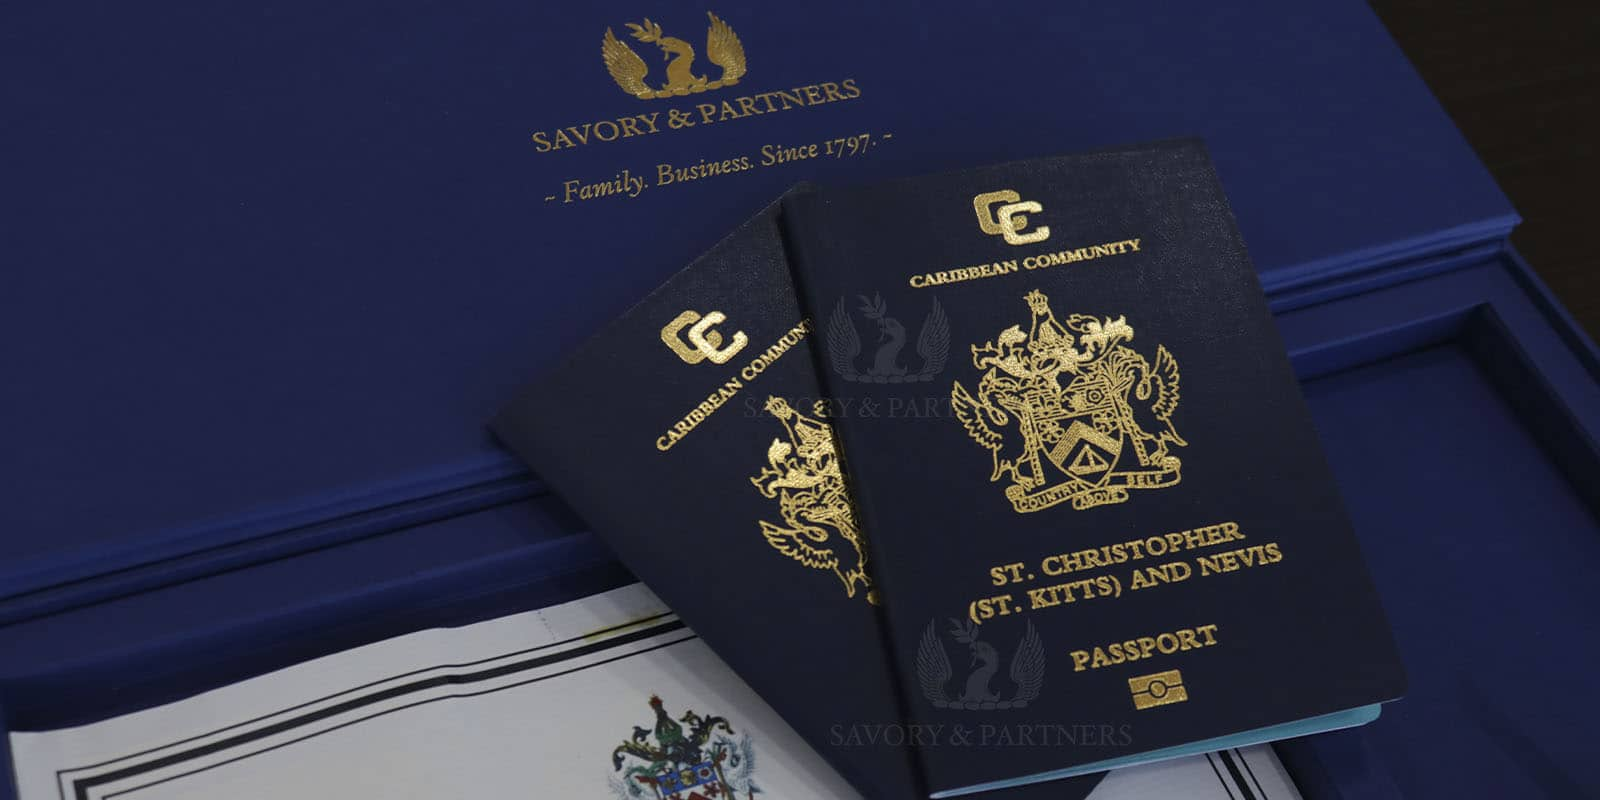 St Kitts and Nevis passports at Savory & Partners offices in Dubai.